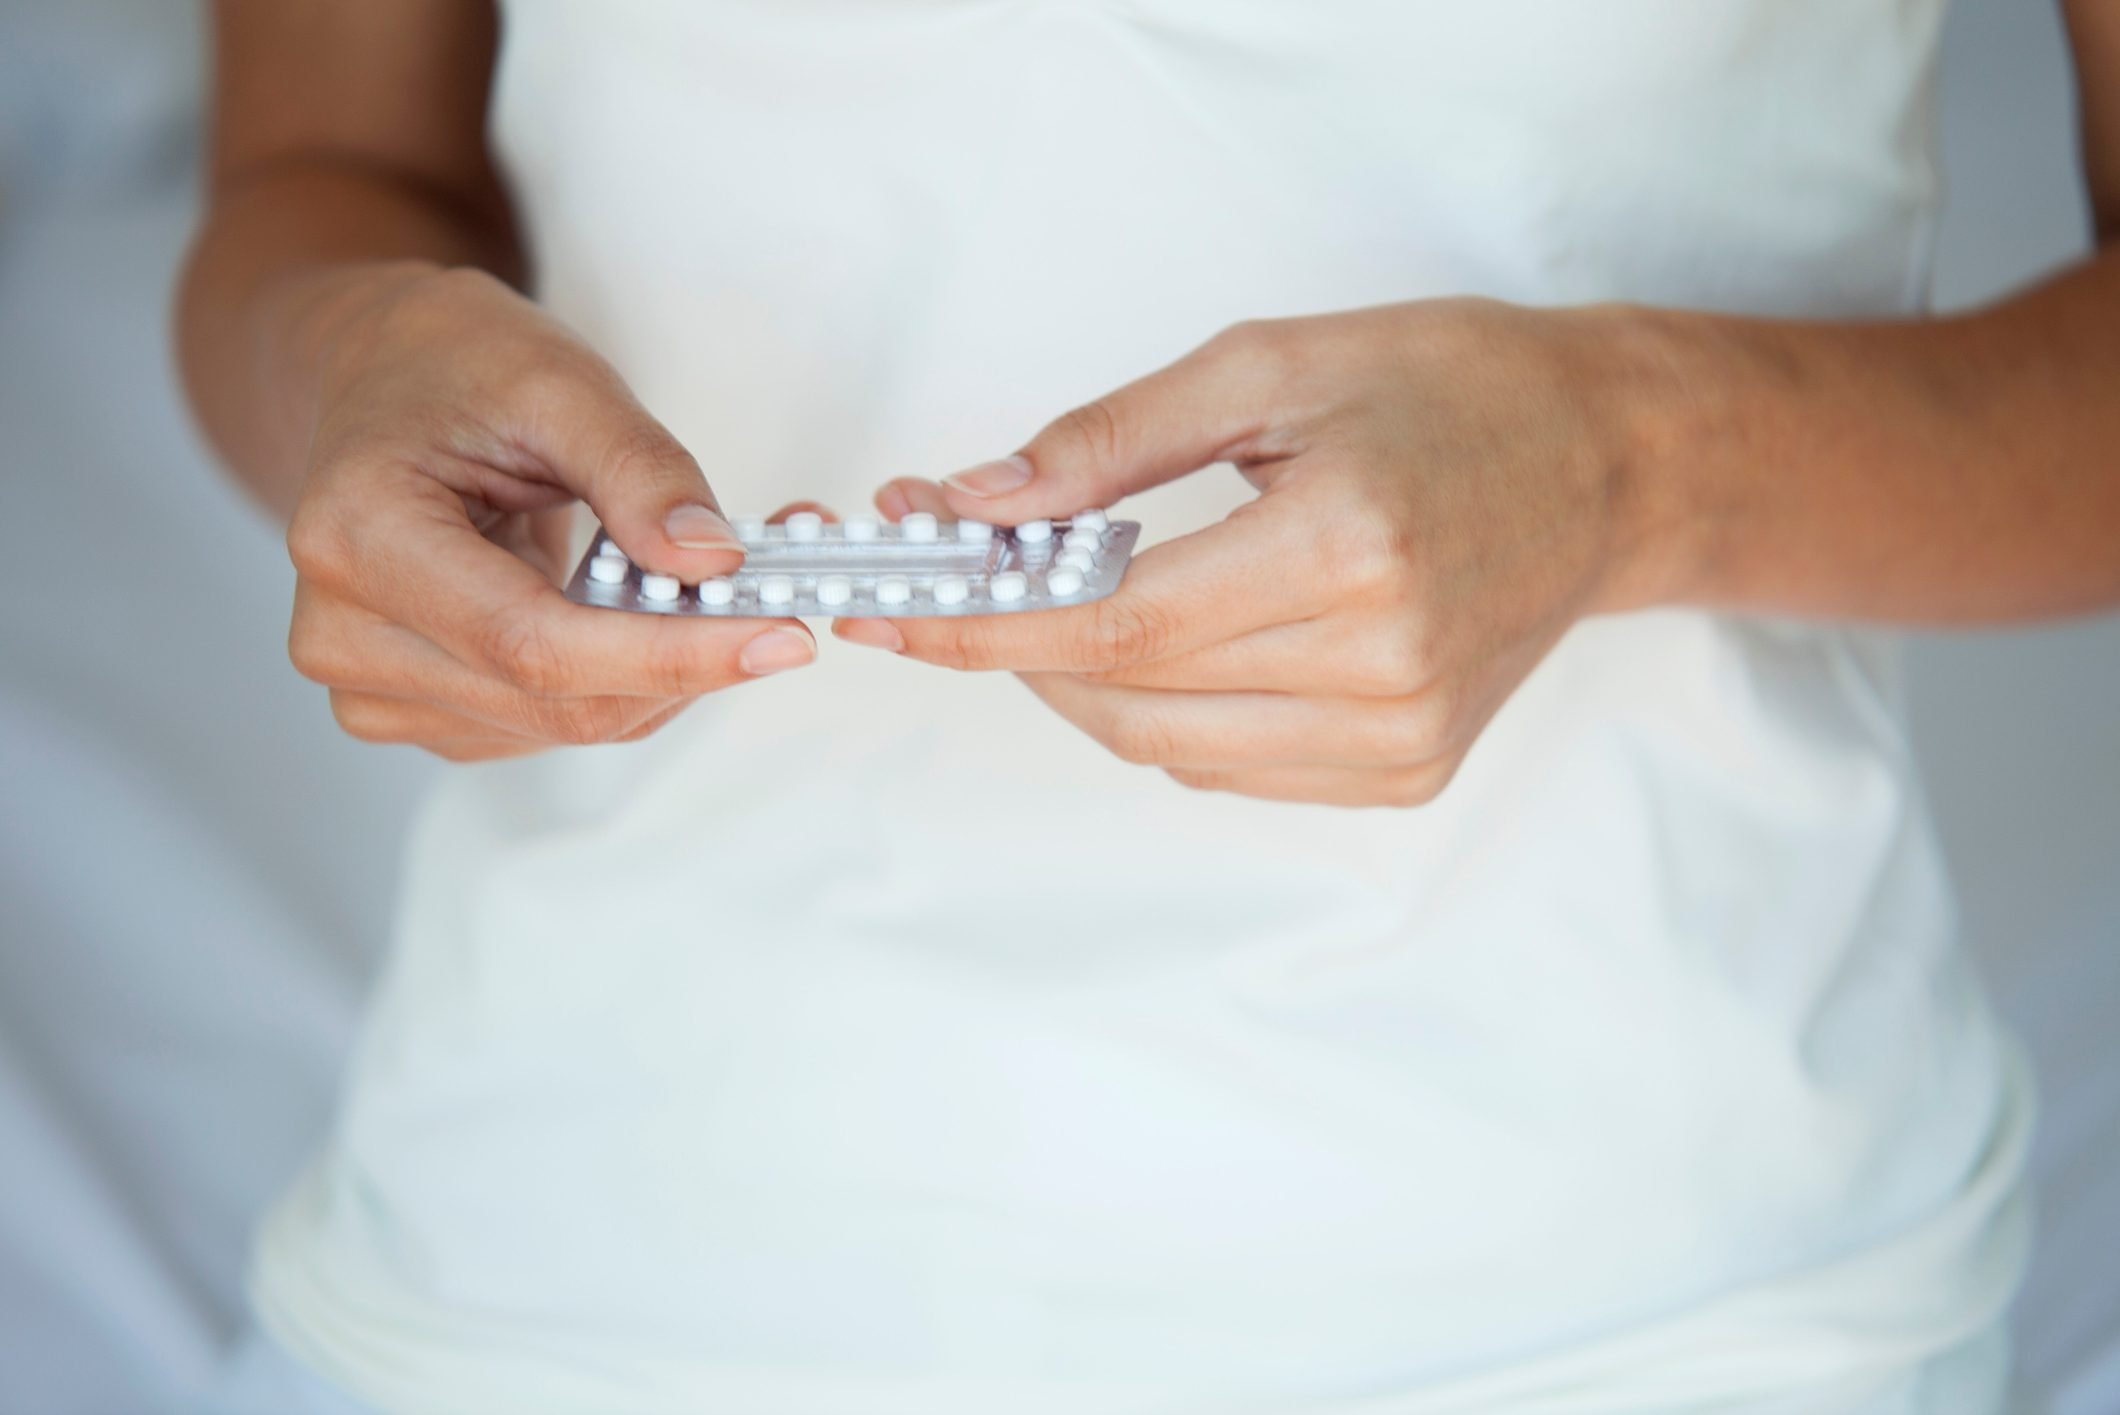 woman holding pack of birth control pills cropped close up shot